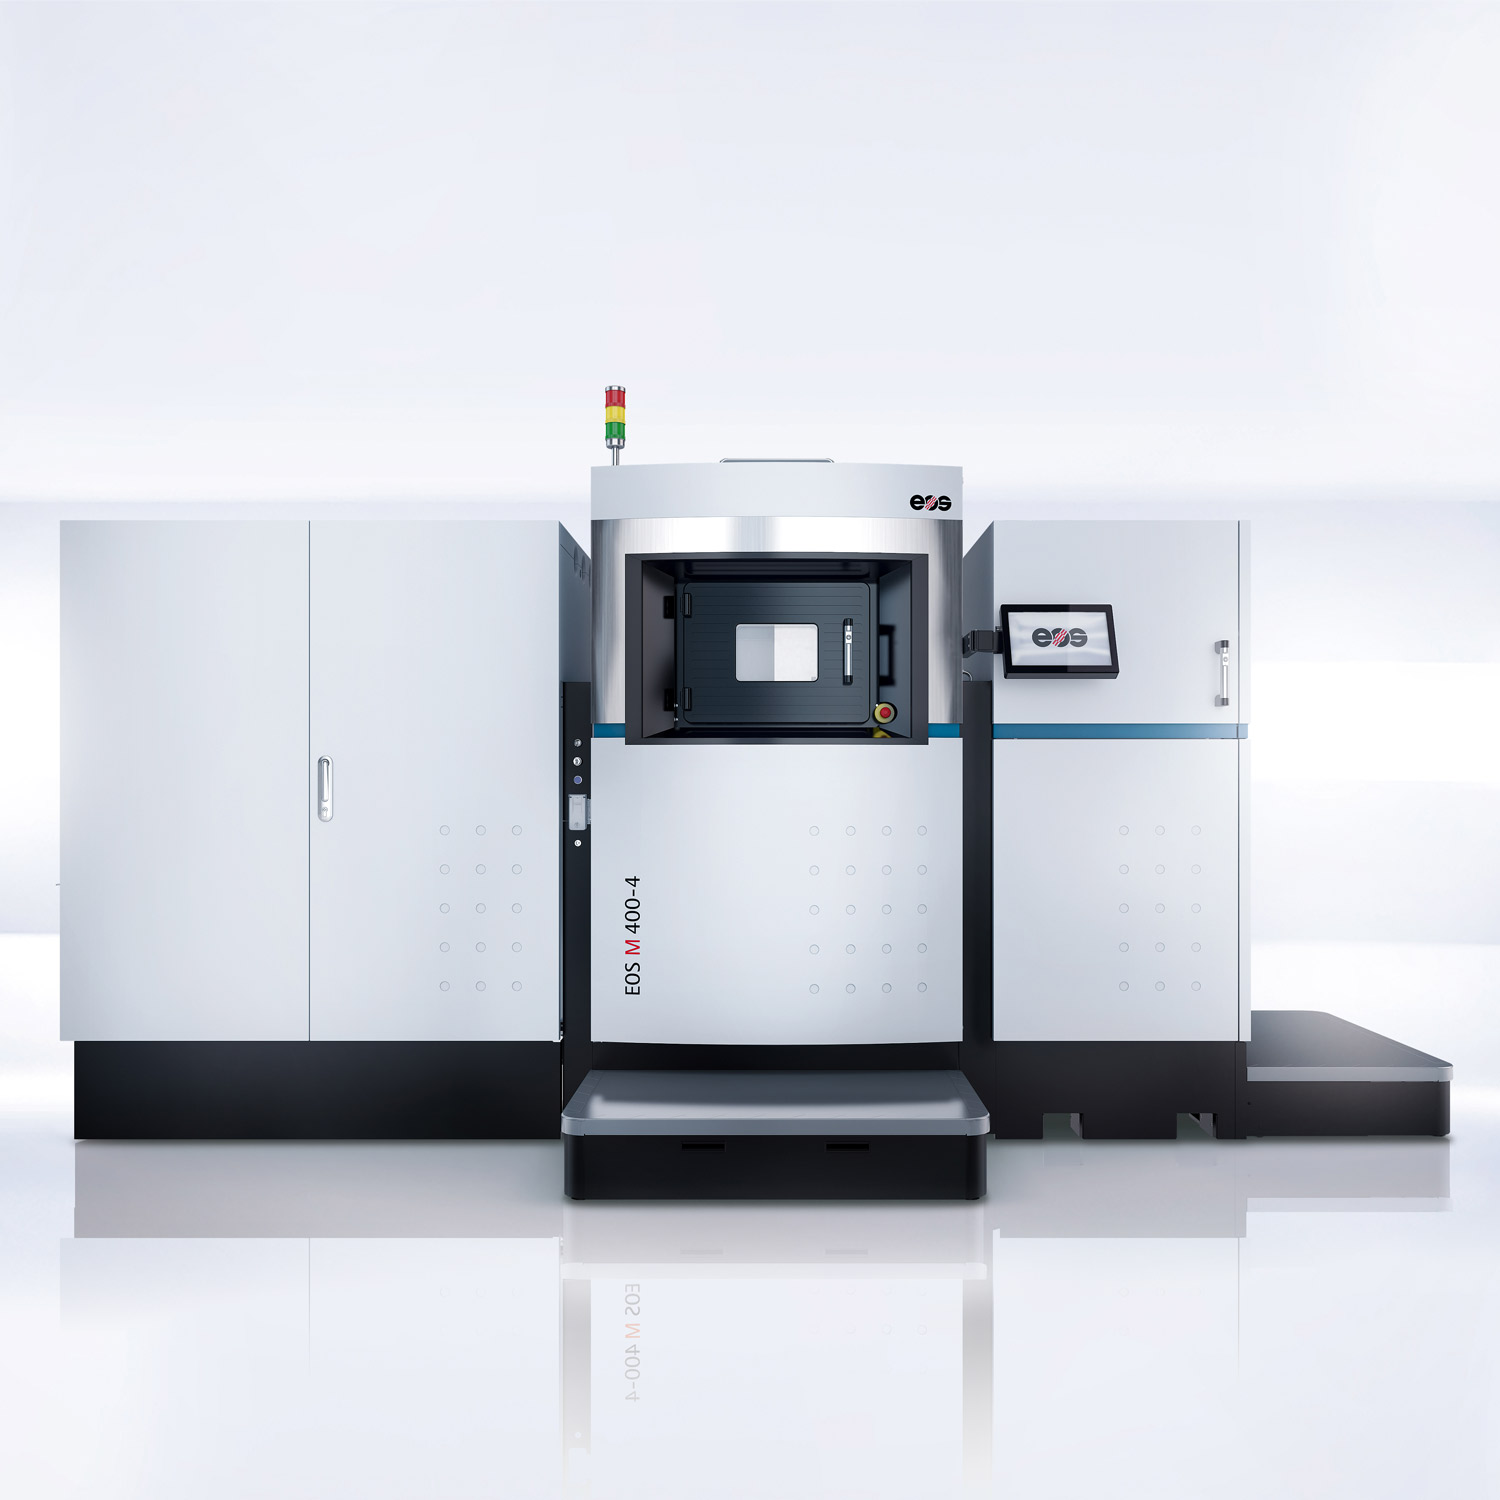 Precision Adm Quadruples Capacity With Major Additive